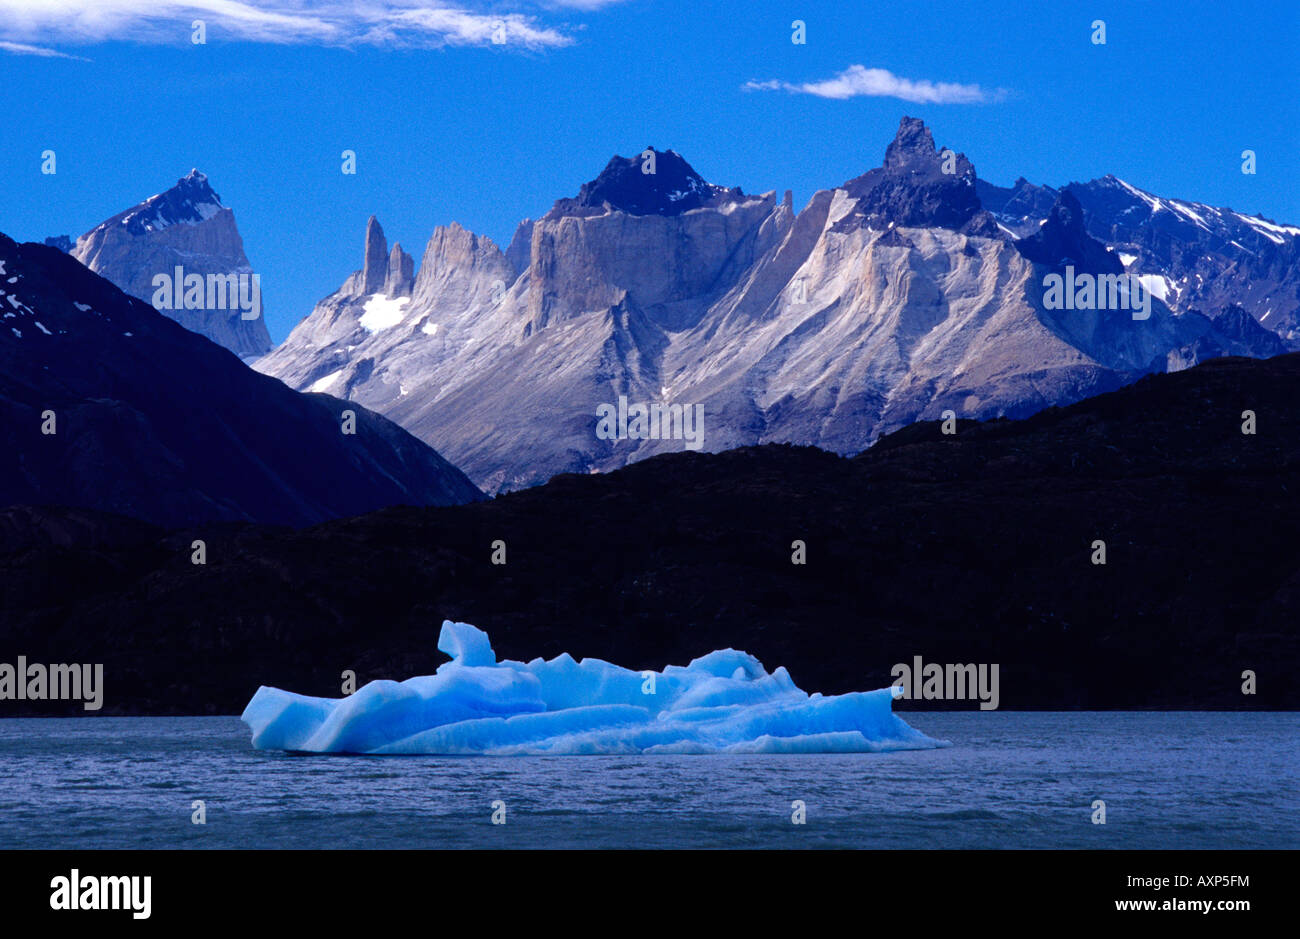 Iceberg on Lake Grey Torres del Paine National Park XII Region of Magallanes Chile South America - Stock Image